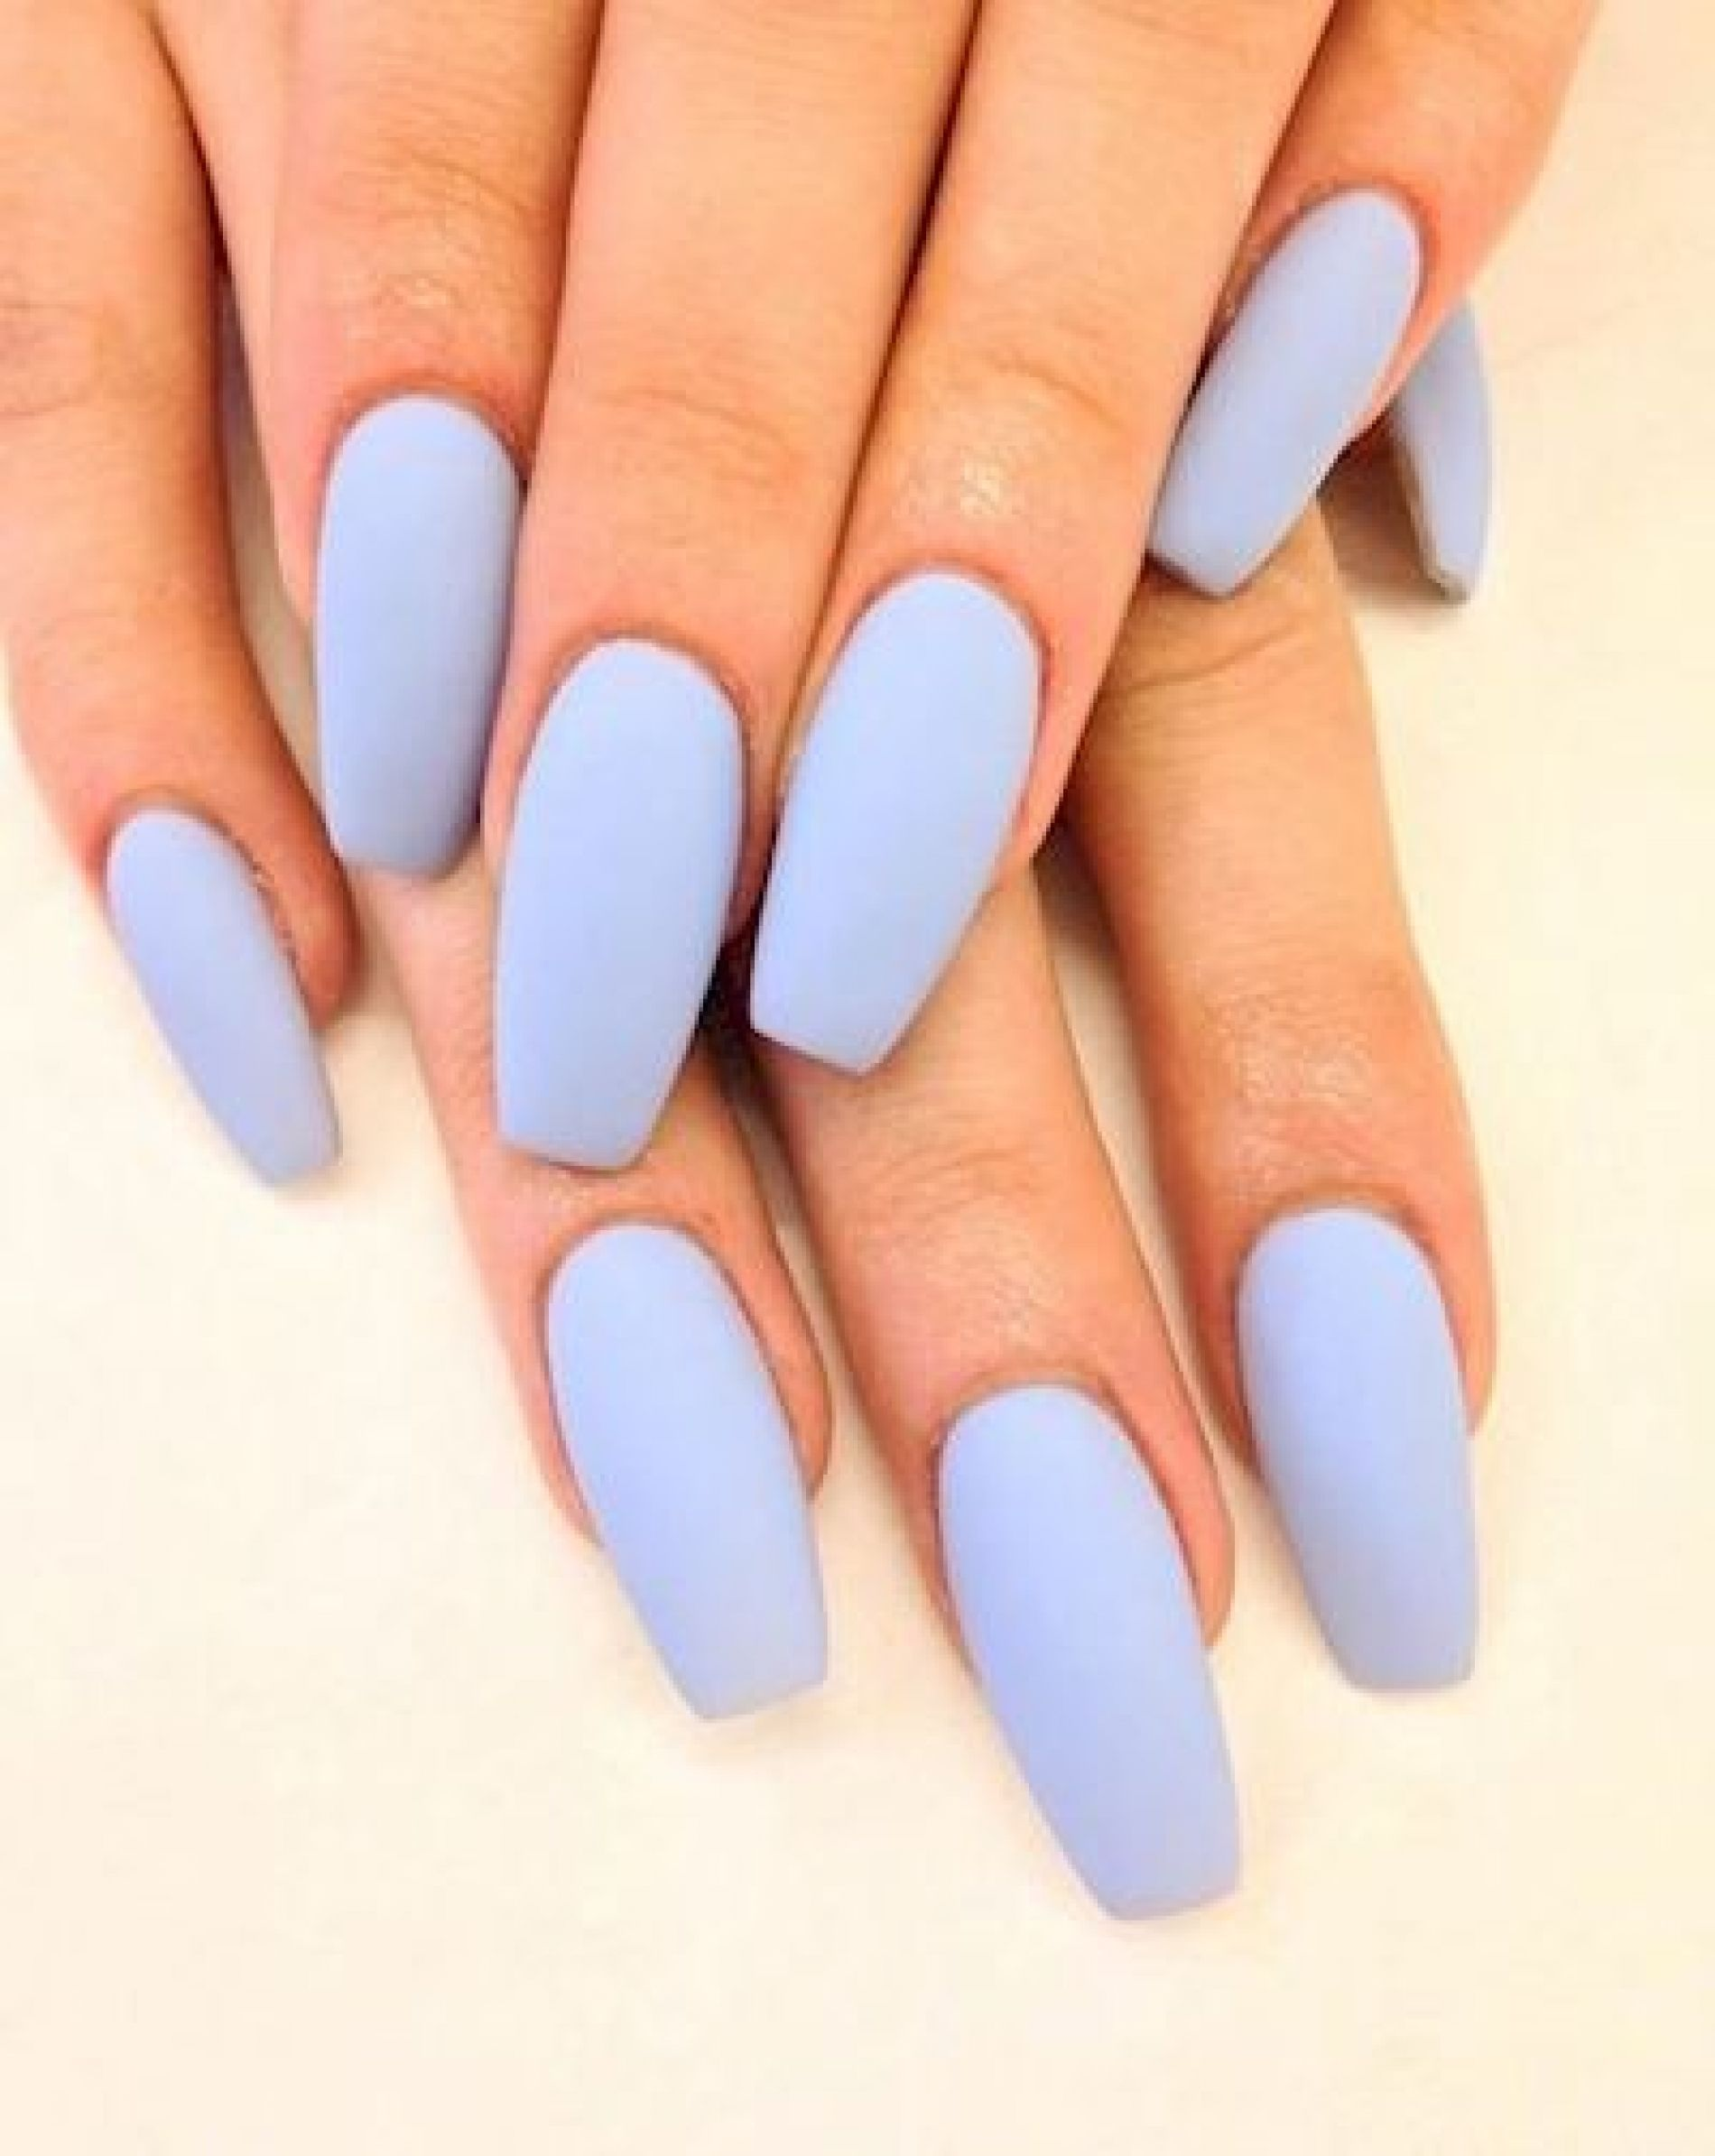 Pin von Loren Walls auf Nail addicted !! | Pinterest | Acryl nails ...